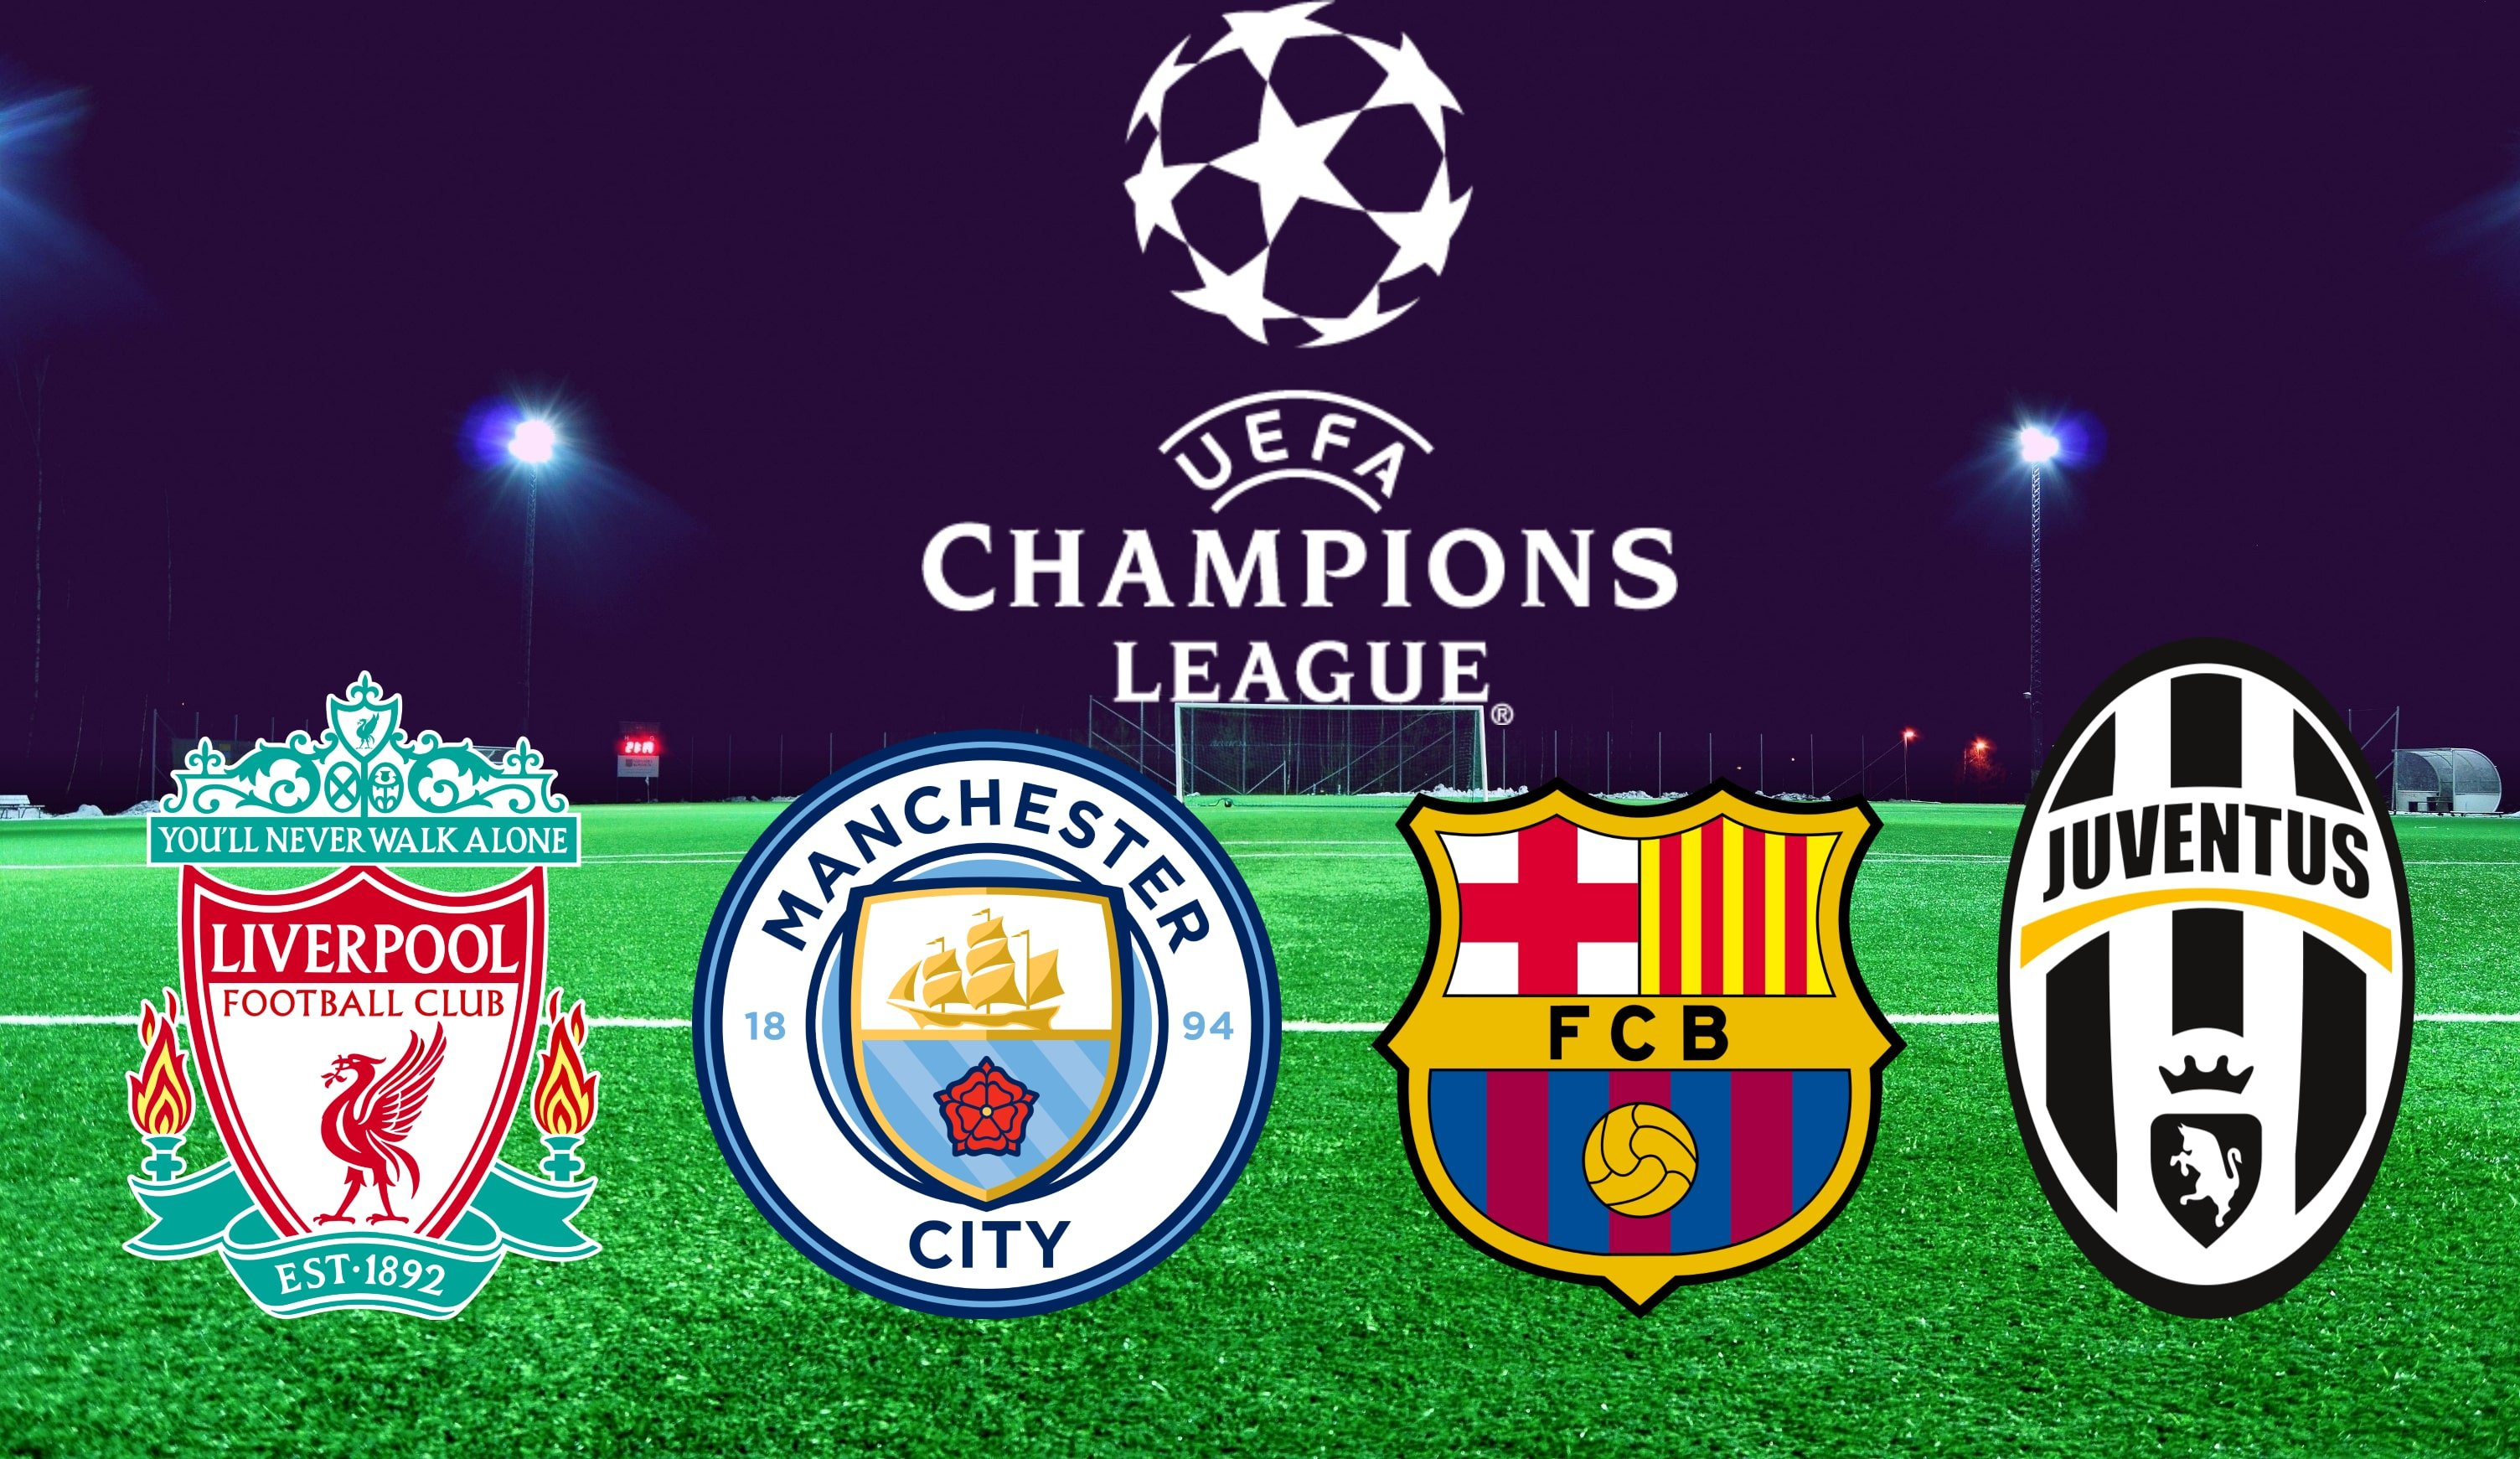 Champions League 2019-20 Teams that Progress to the Group Stage Without Qualification